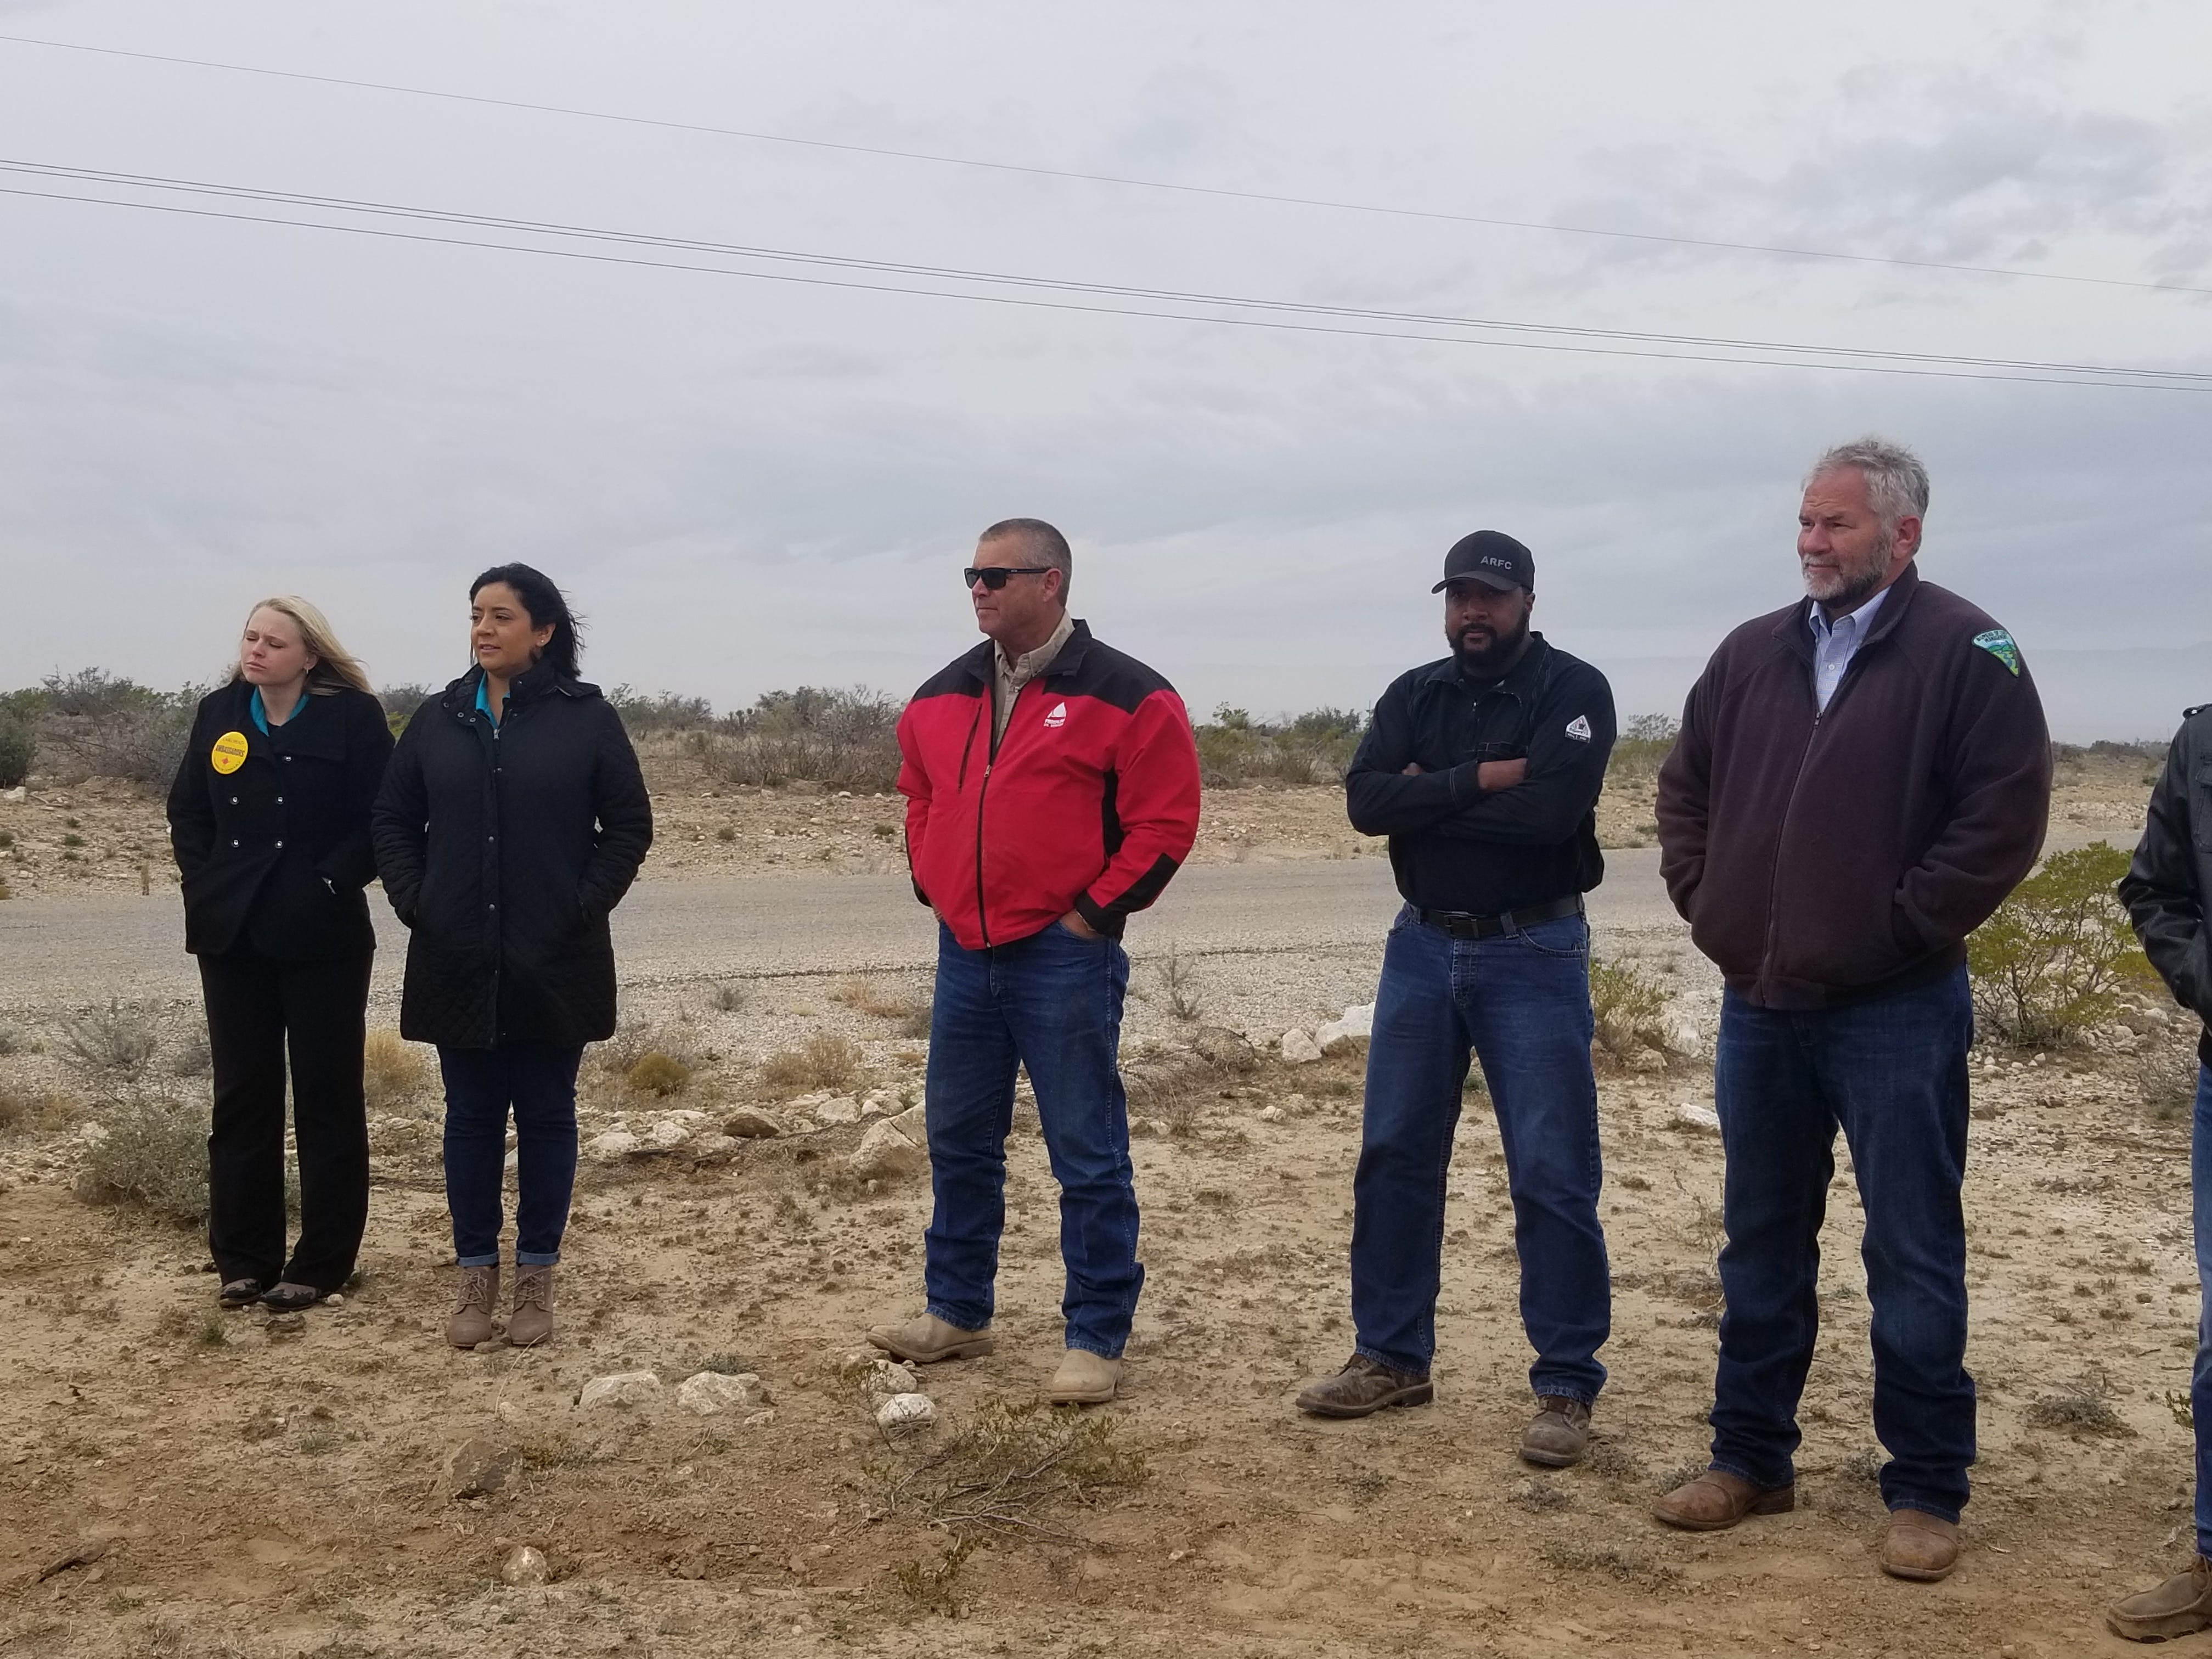 Improvements to the Chosa Campground were made possible through partnerships with local businesses, the Bureau of Land Management and area organizations.